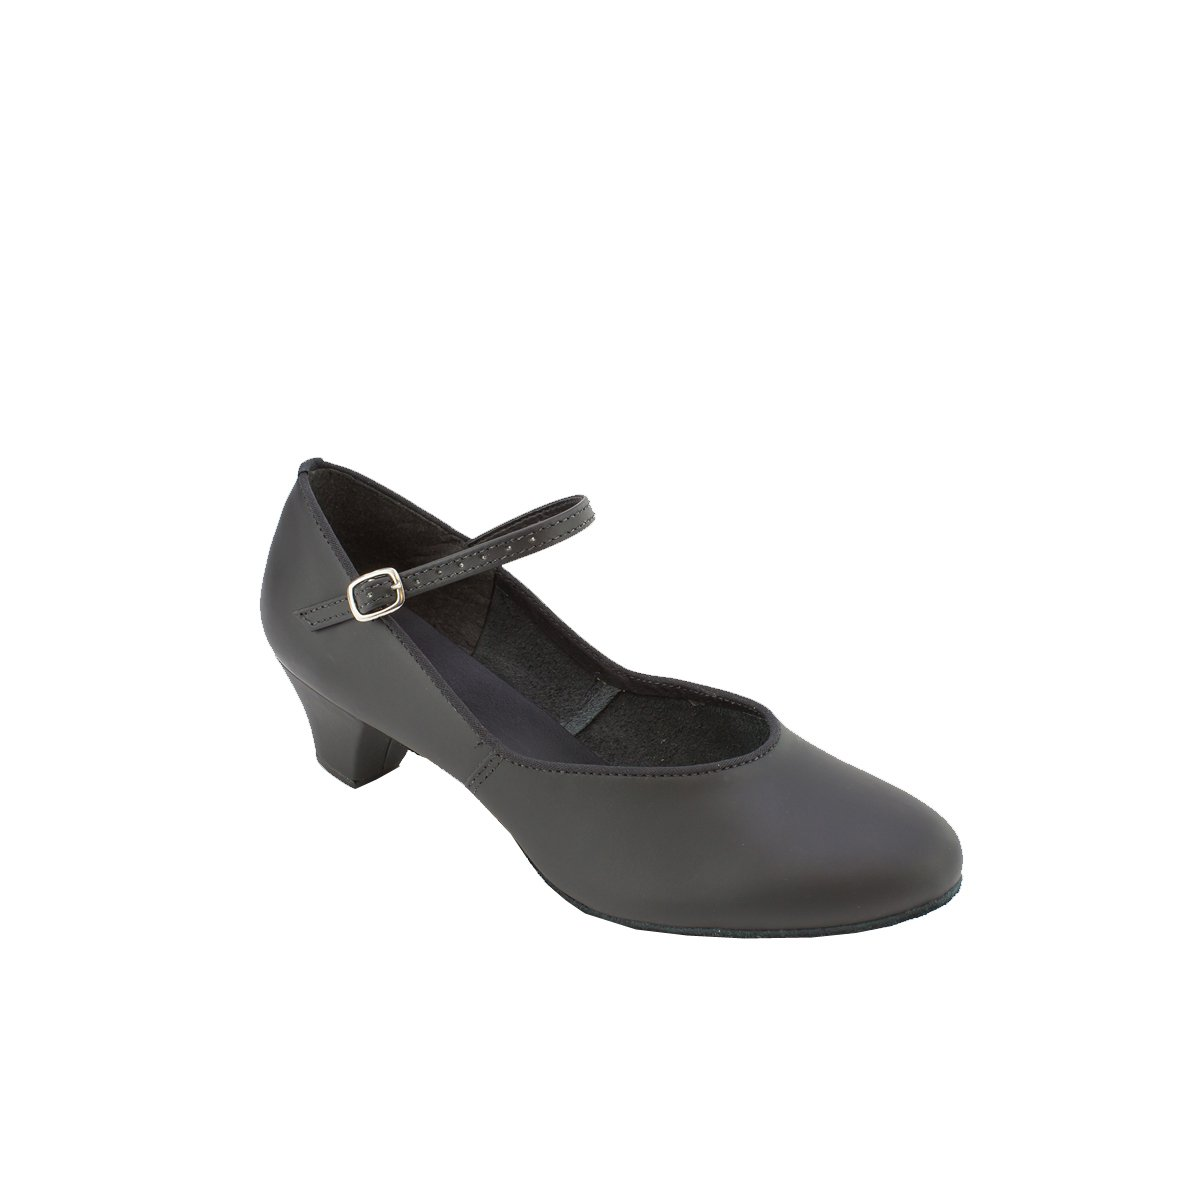 "SoDanca CH-02 Adult Candice 1.25"" Flexible Shank Character Shoe"